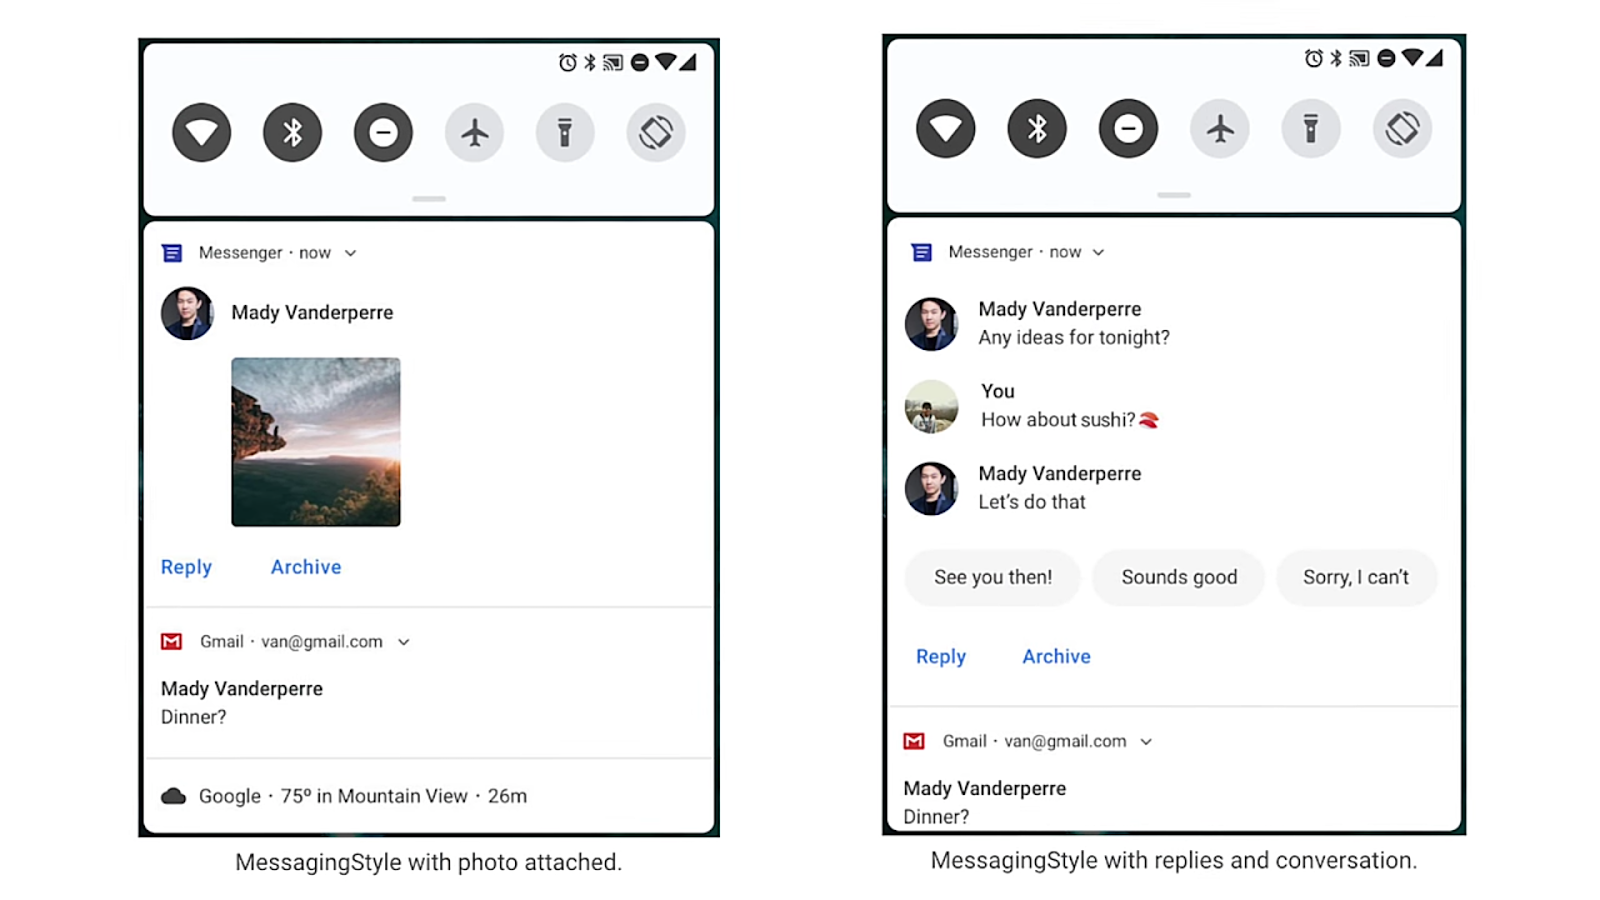 The notifications panel with smart replies